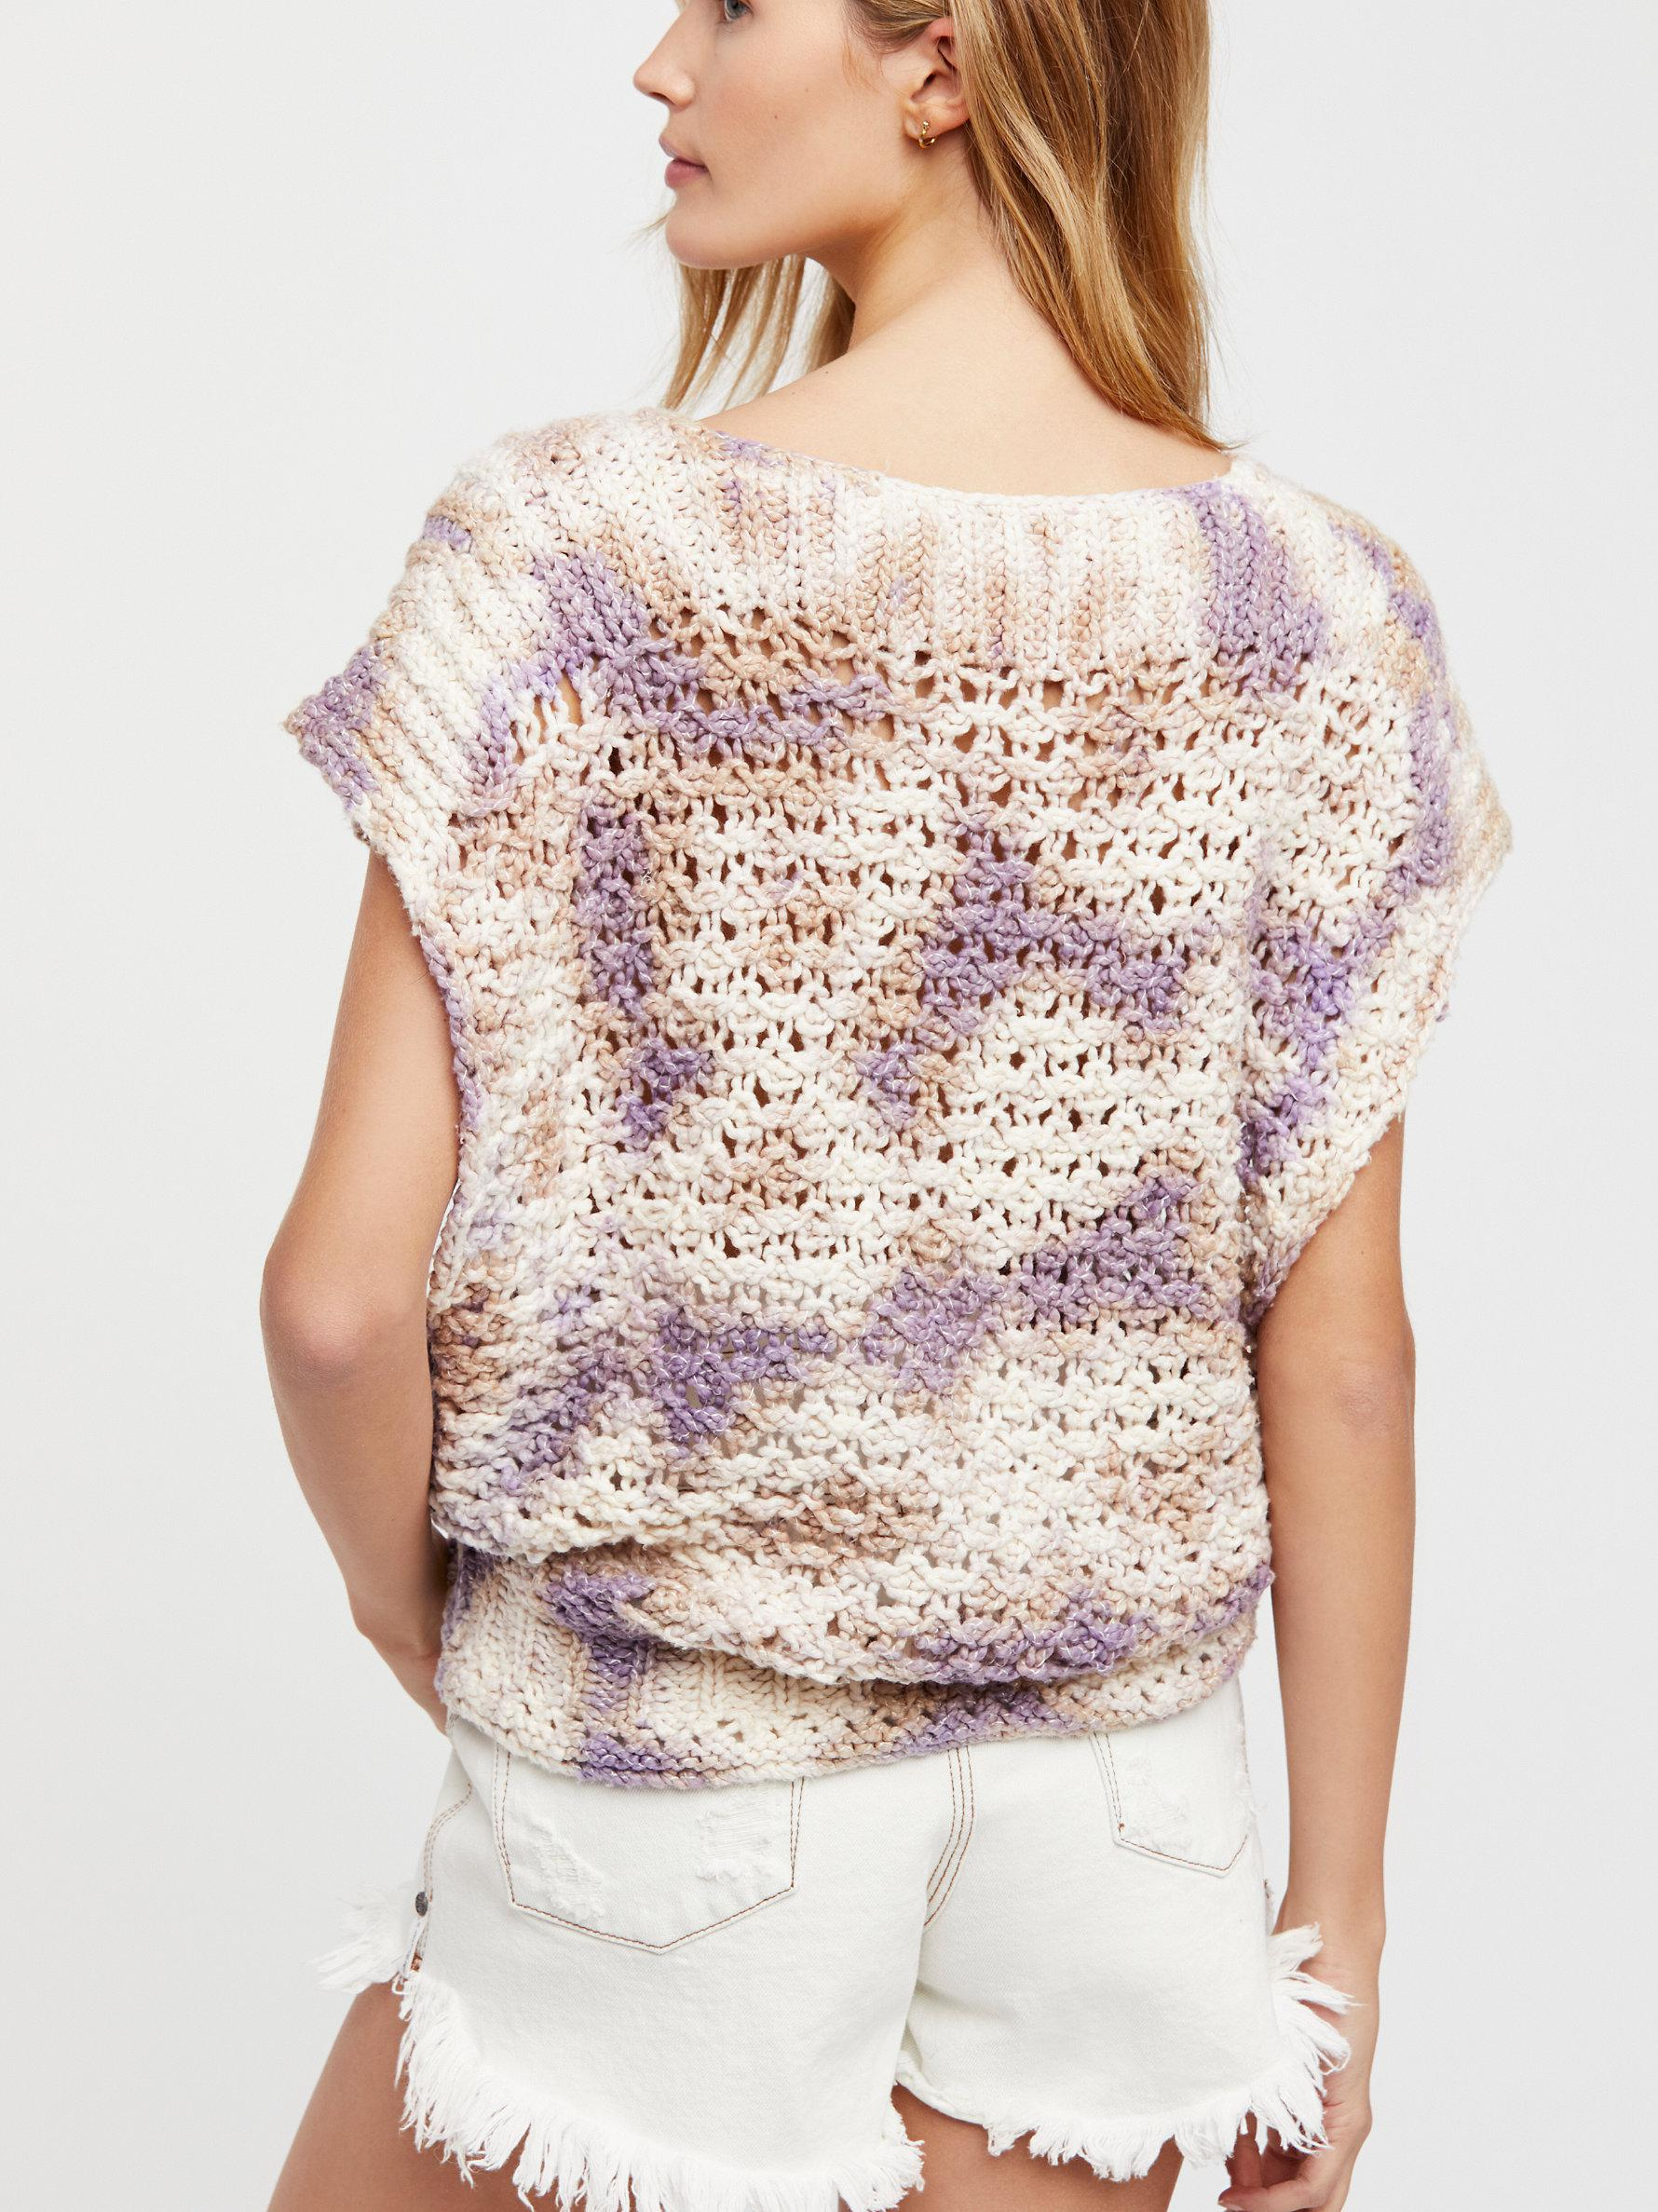 Free People Womens Diamond in The Rough Relaxed Short Sleeves Sweater Vest